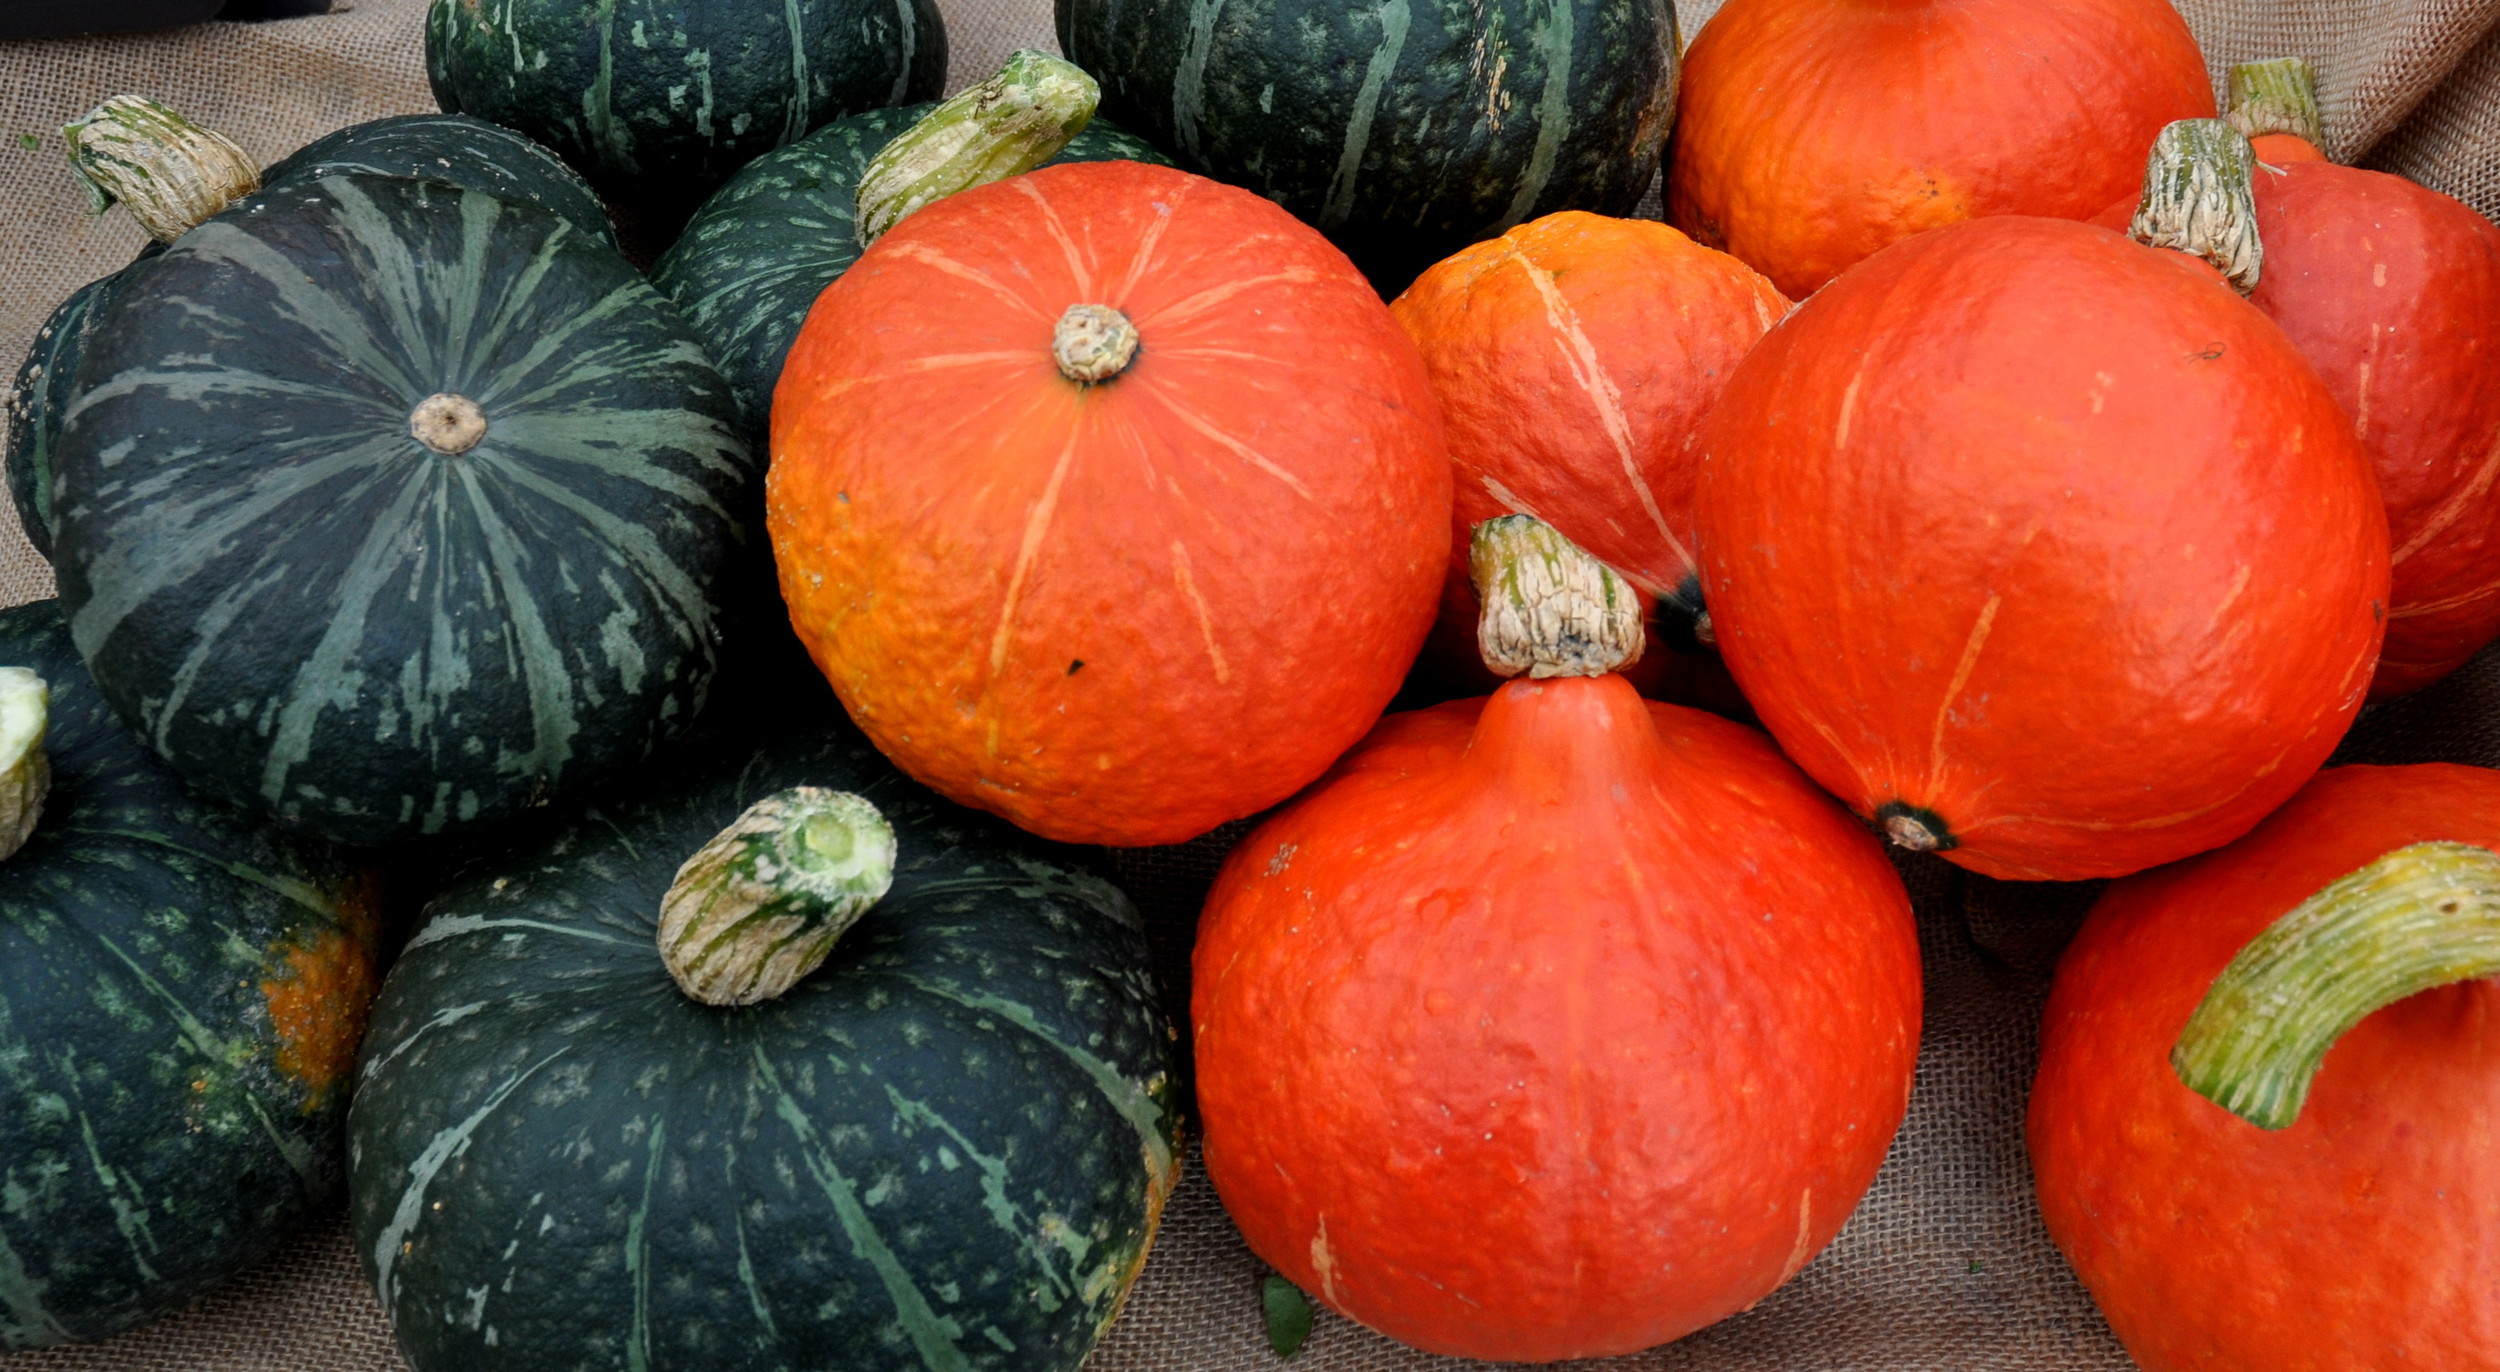 Kabocha and Red Kuri winter squash from One Leaf Farm. Photo copyright 2013 by Zachary D. Lyons.